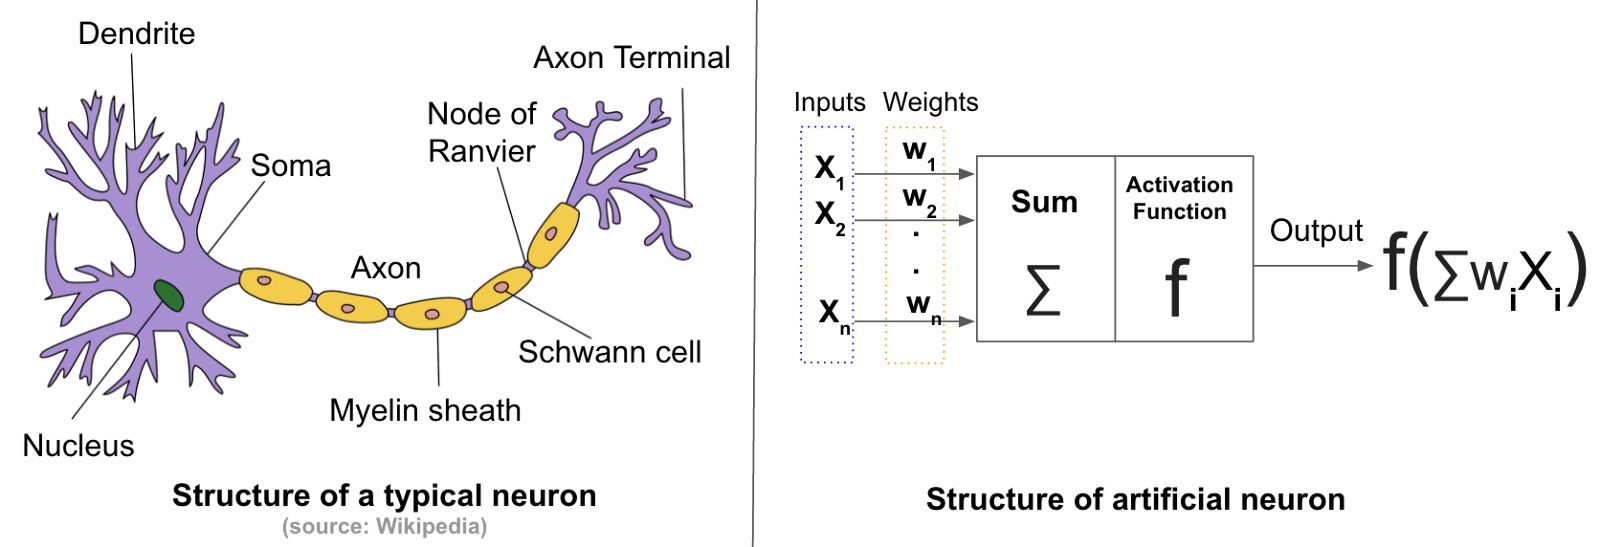 thesis on artificial neural network Experimental set up the neural network fitting tool gui nntool available in matlab 760 (r2008a) is used to carry out the analysis on the weather data using artificial feed-forward neural network with back-propagation principles [6.